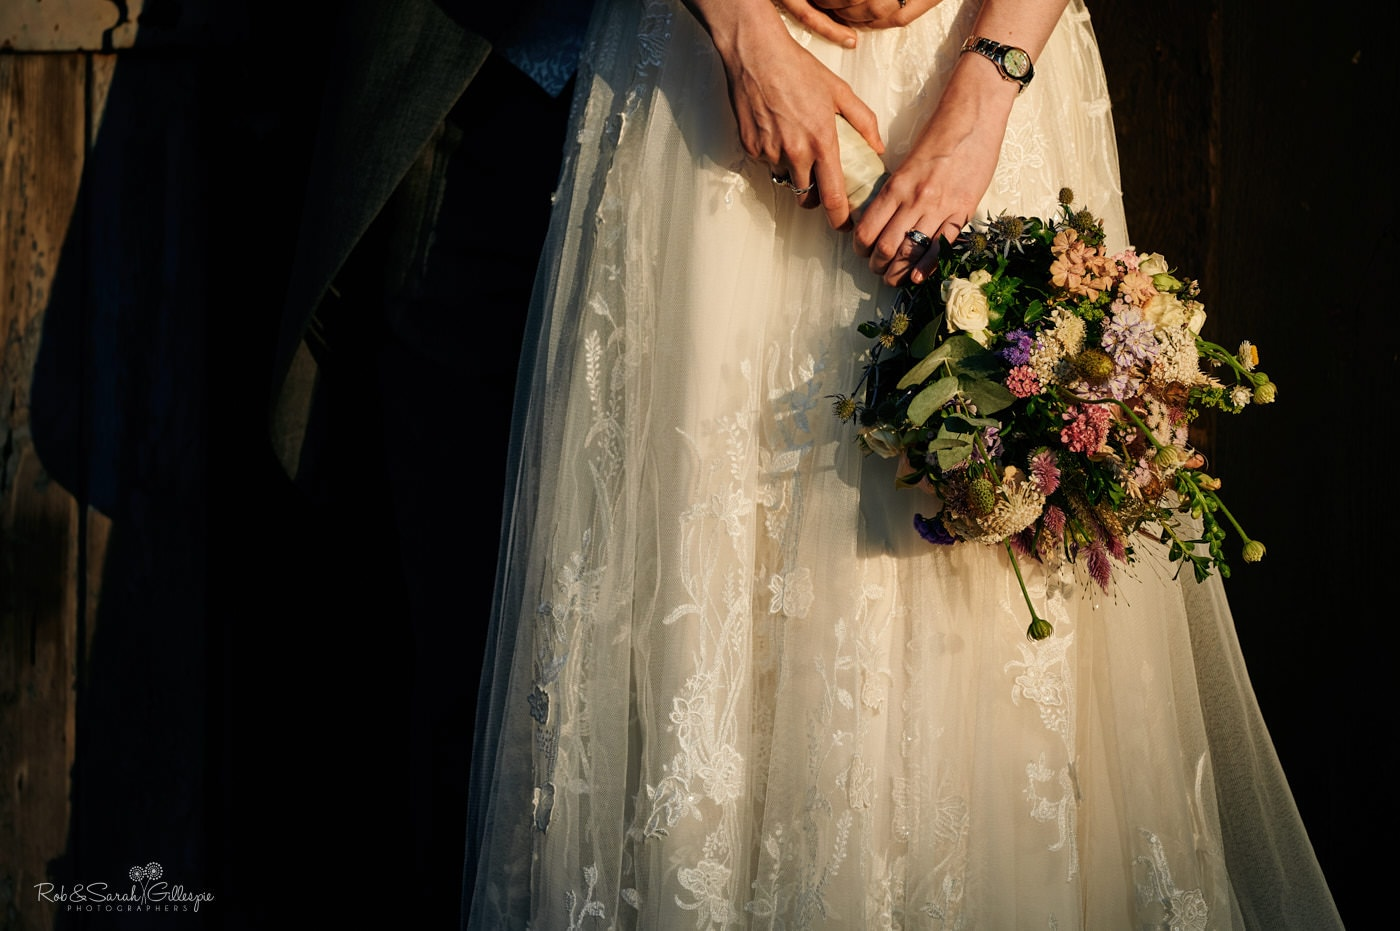 Detail of bride's bouquet in beautiful evening light